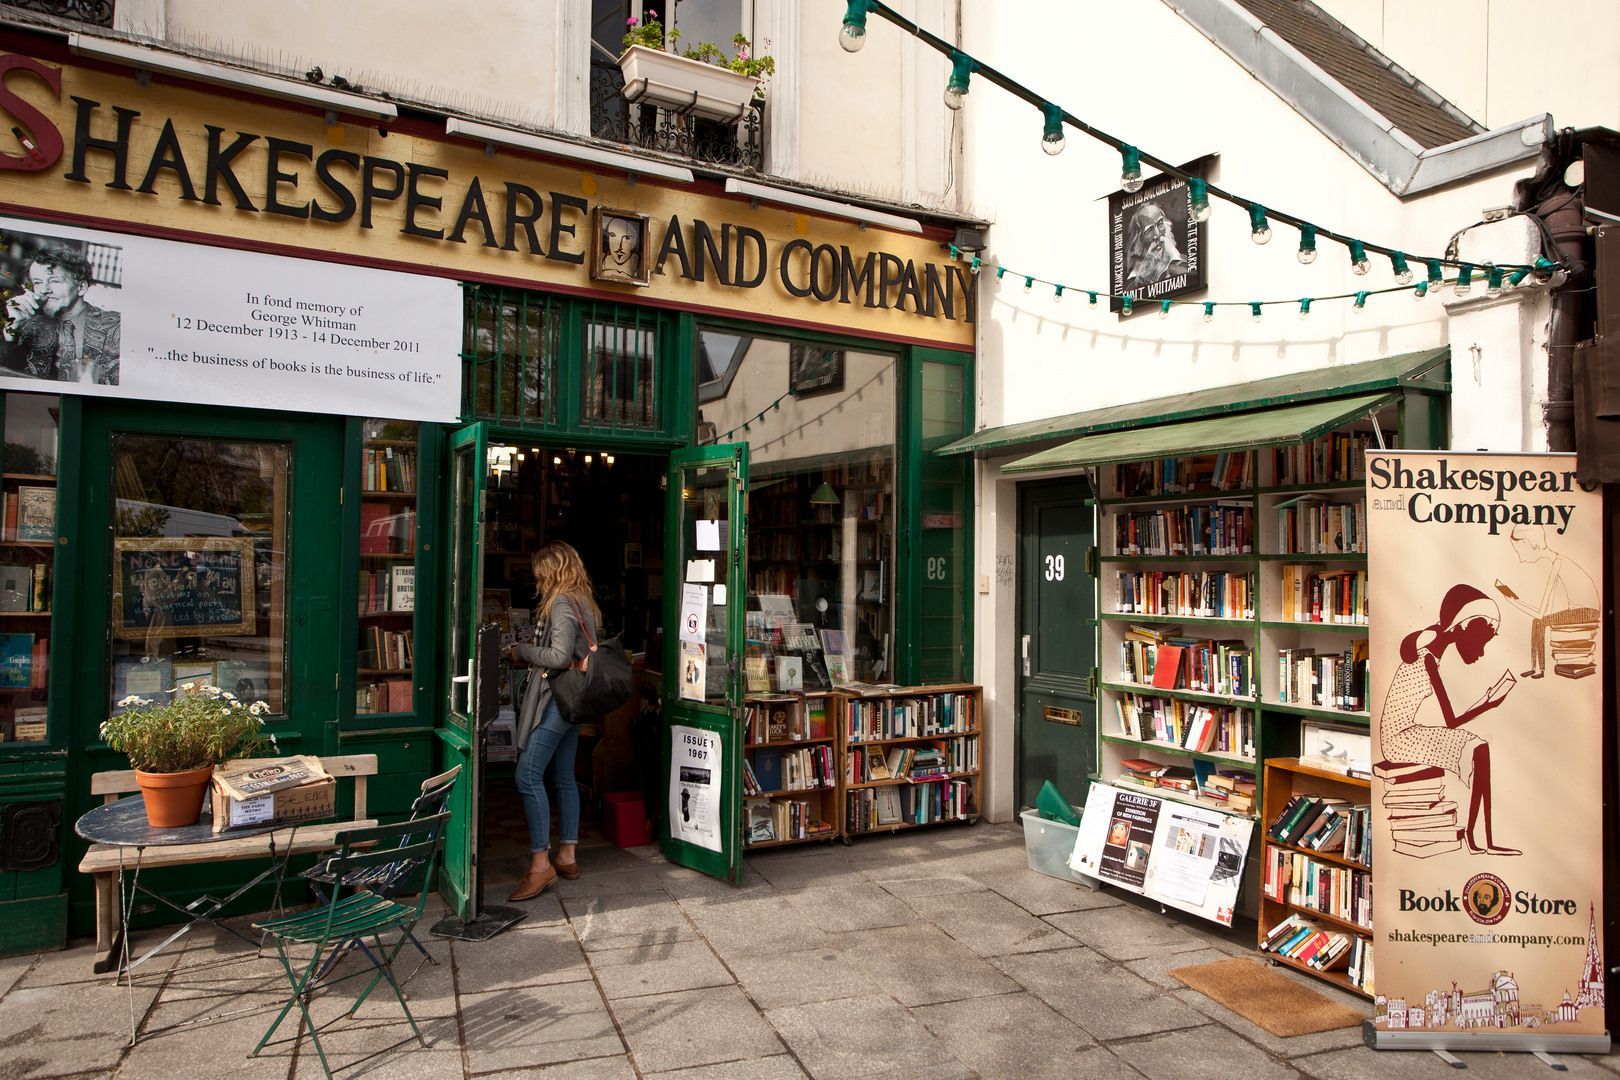 """Opened in 1951 by George Whitman, it was originally named """"Le Mistral"""" but renamed to """"Shakespeare and Company"""" in 1964 in tribute to Sylvia Beach's bookstore. Today, it serves both as a regular bookstore and as a reading library, specializing in English-language literature."""